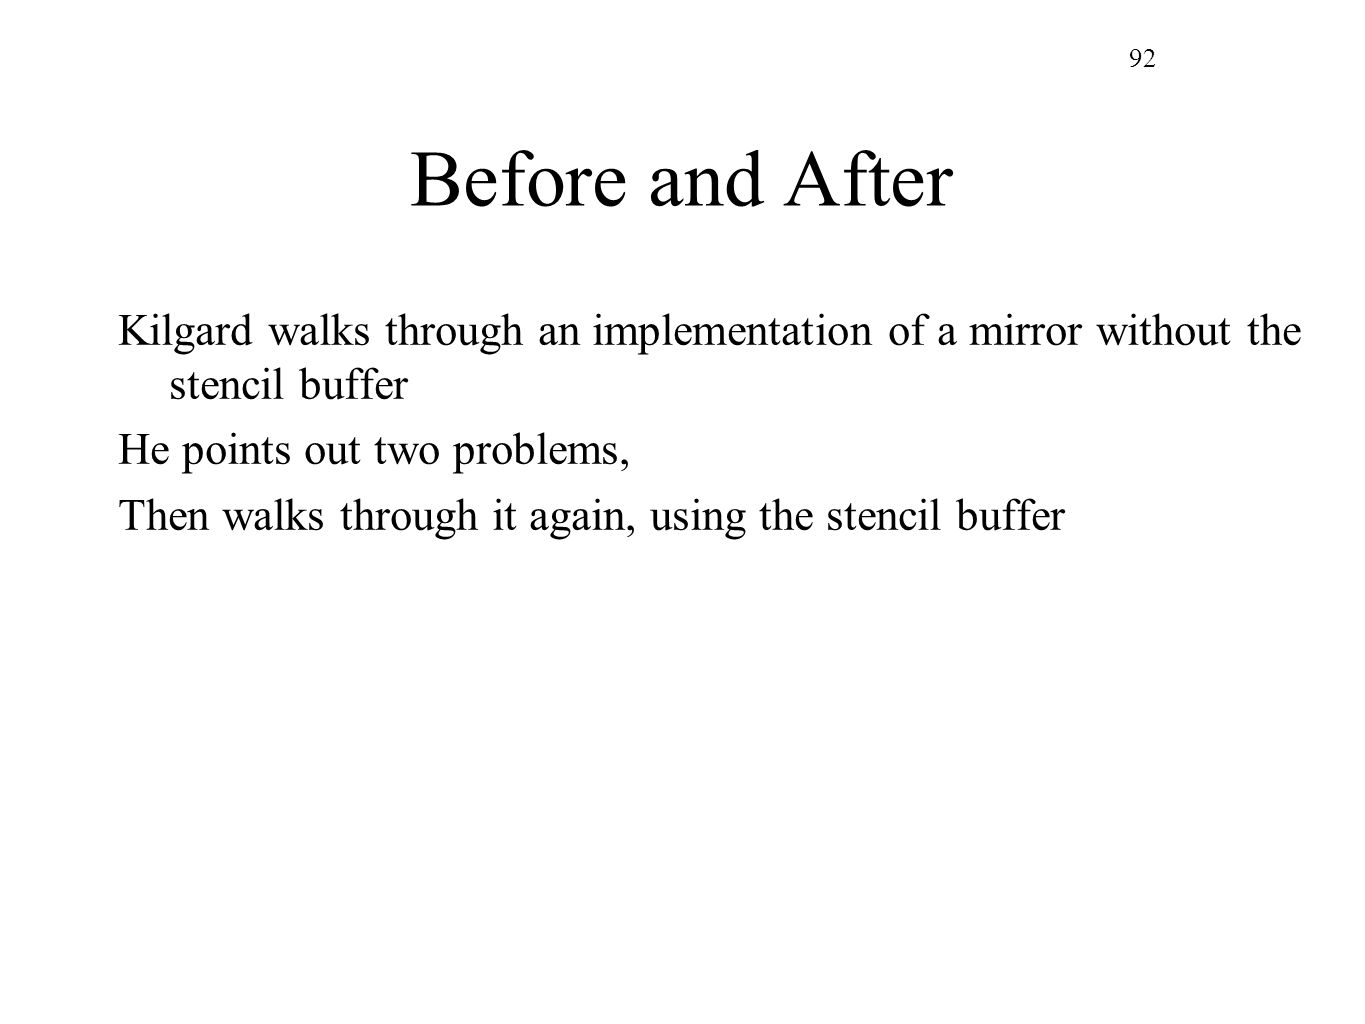 92 Before and After. Kilgard walks through an implementation of a mirror without the stencil buffer.